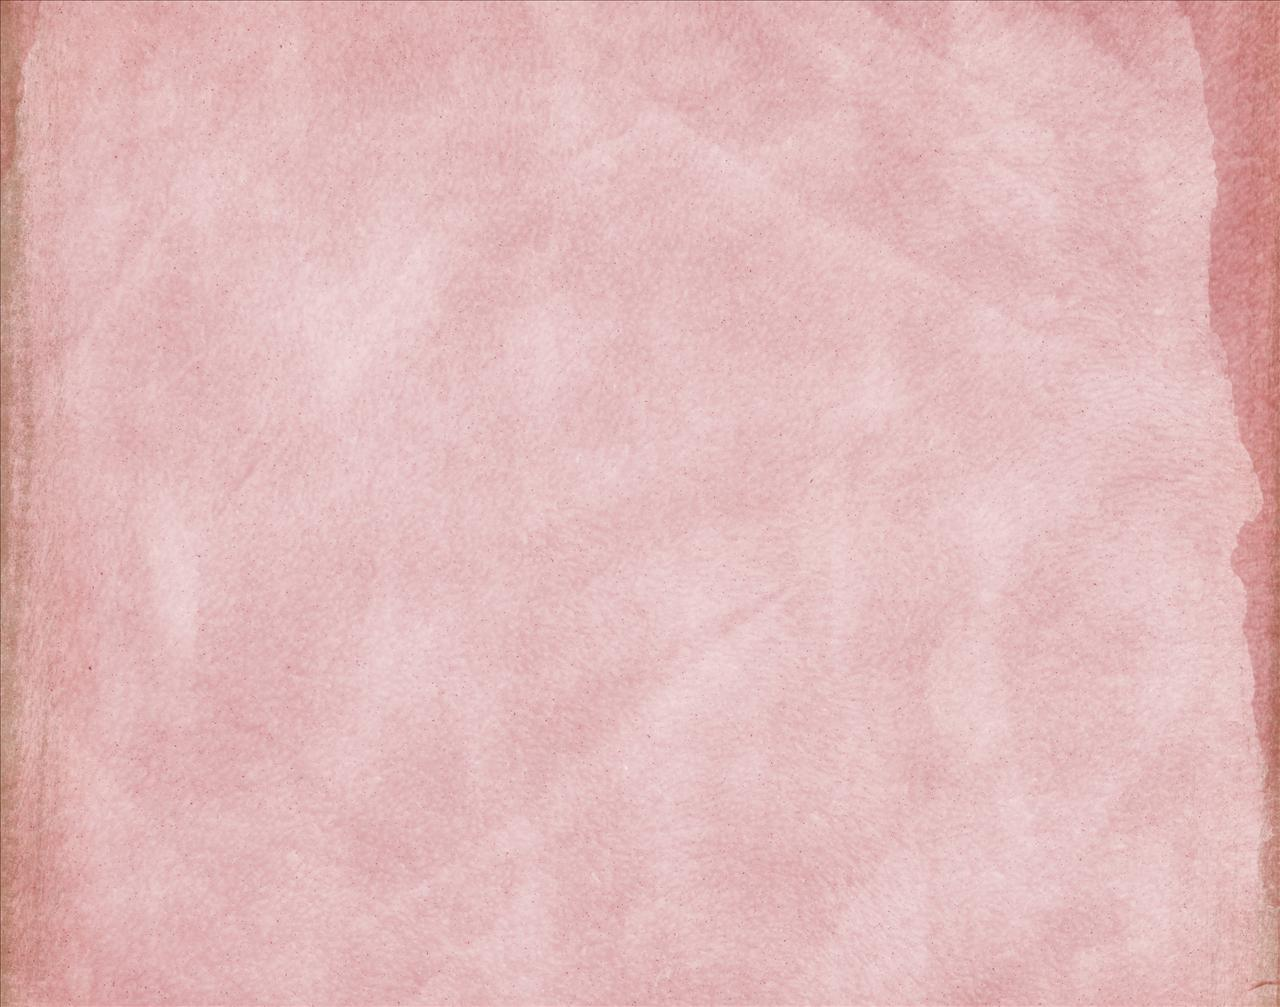 Vintage Pink Backgrounds